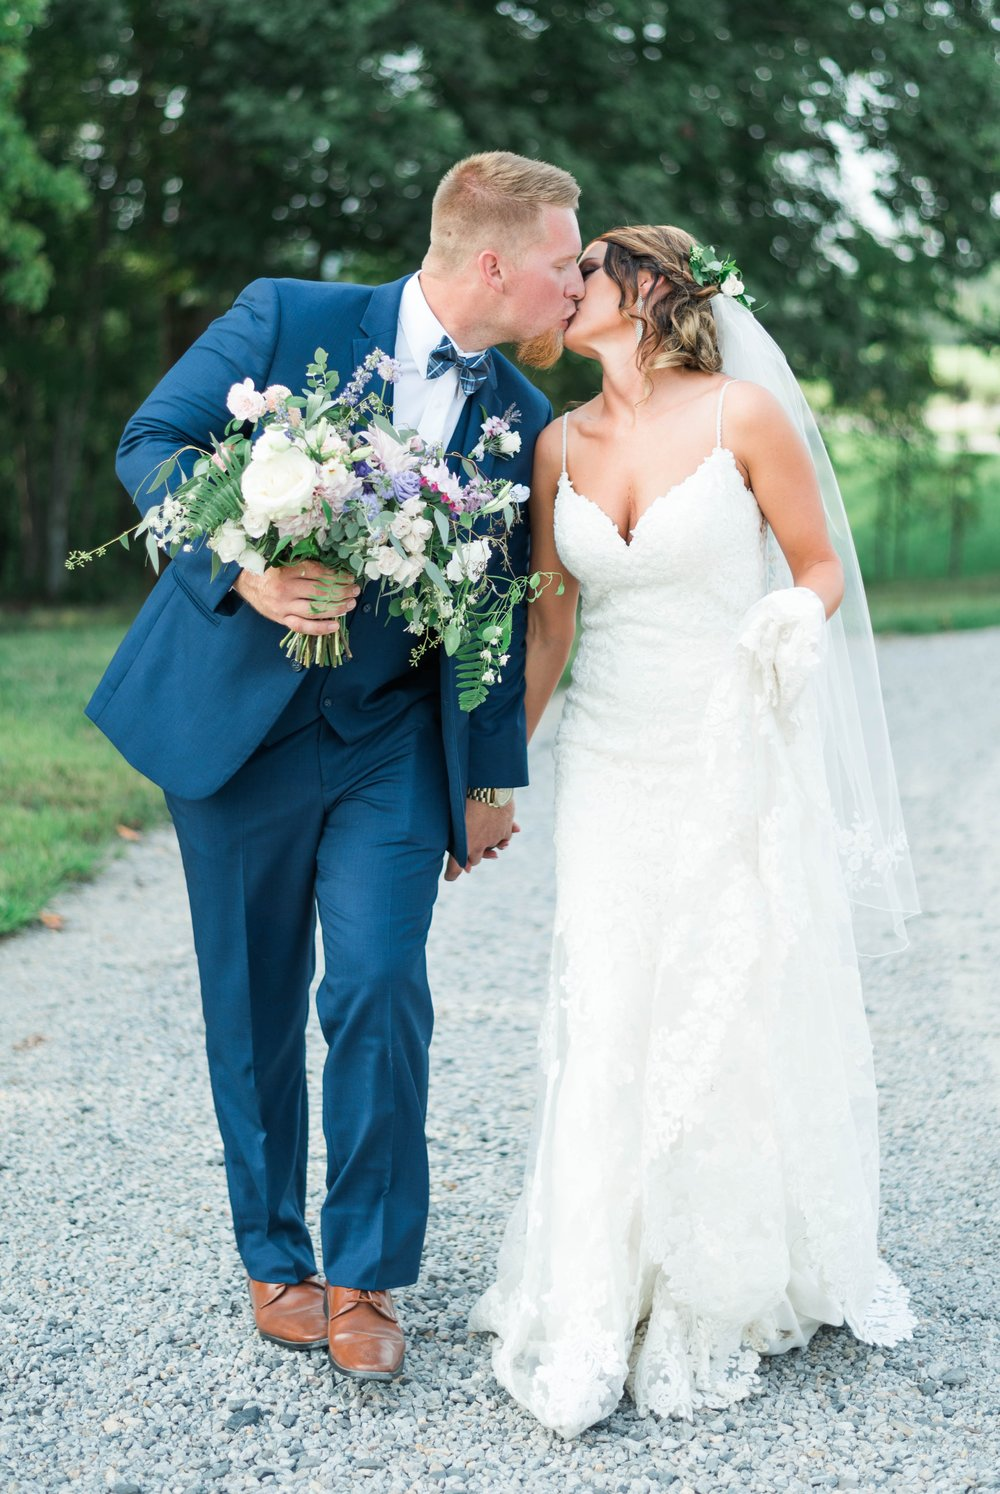 atkinson farms_VirginiaWeddingPhotographer_LynchburgWeddingPhotographer_DylanandLauren 33.jpg